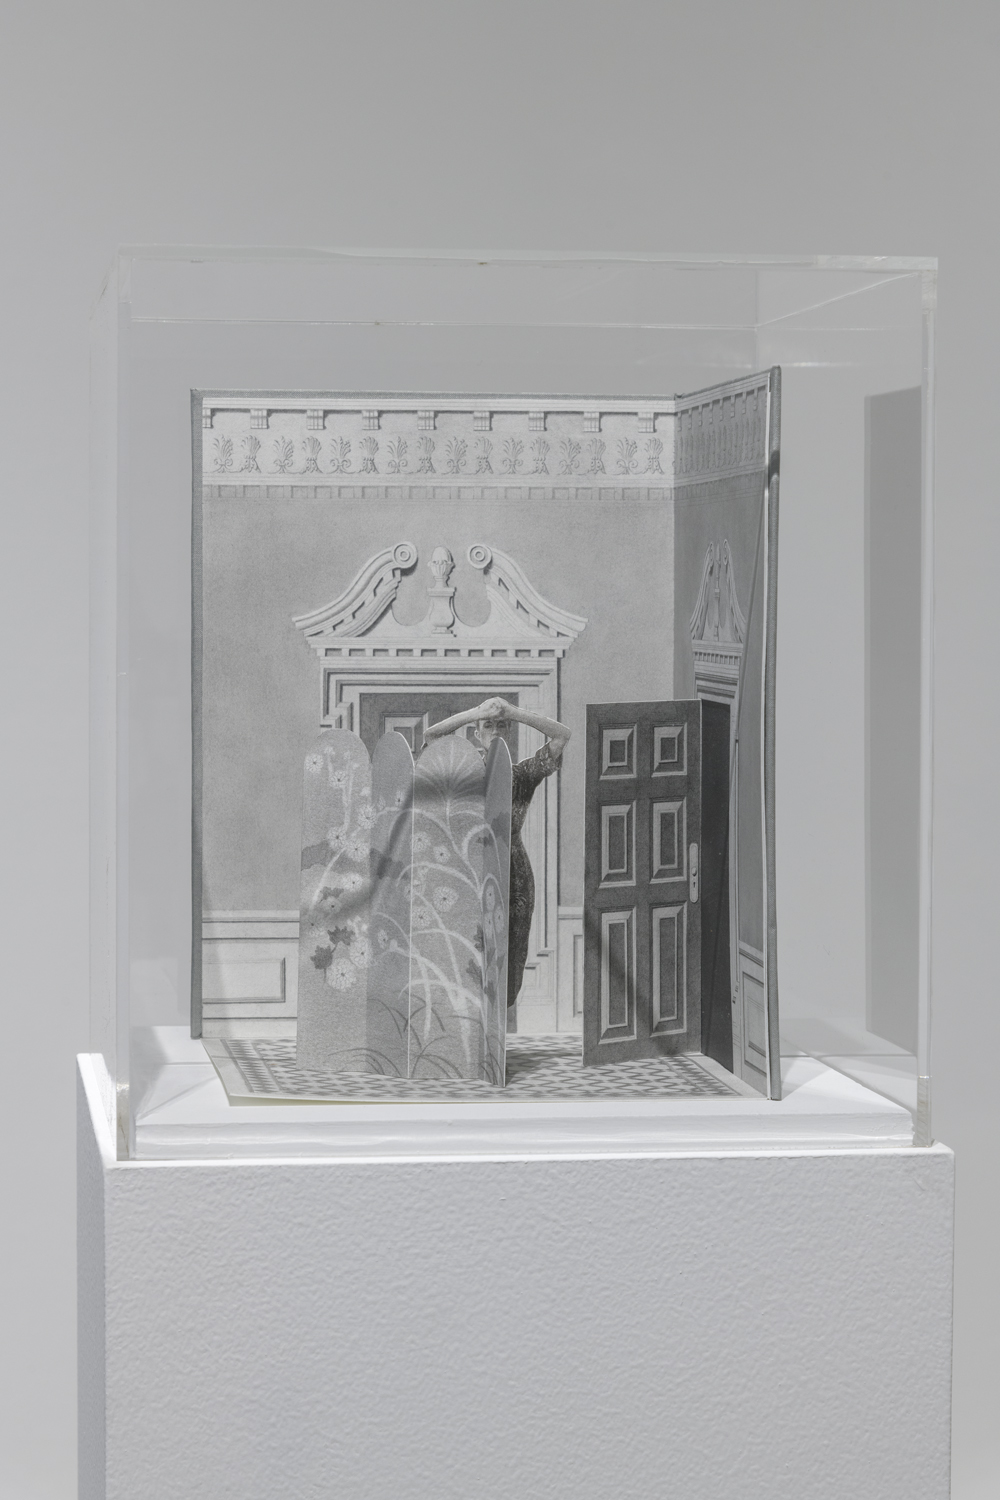 This artwork by the artist Milano Chow is small graphite drawing and sculpture of a room with one door closed and another opened. In the center of this room is a changing partition with a figure peeking out from behind it. The drawing and sculpture also includes a black and white checkered floor.